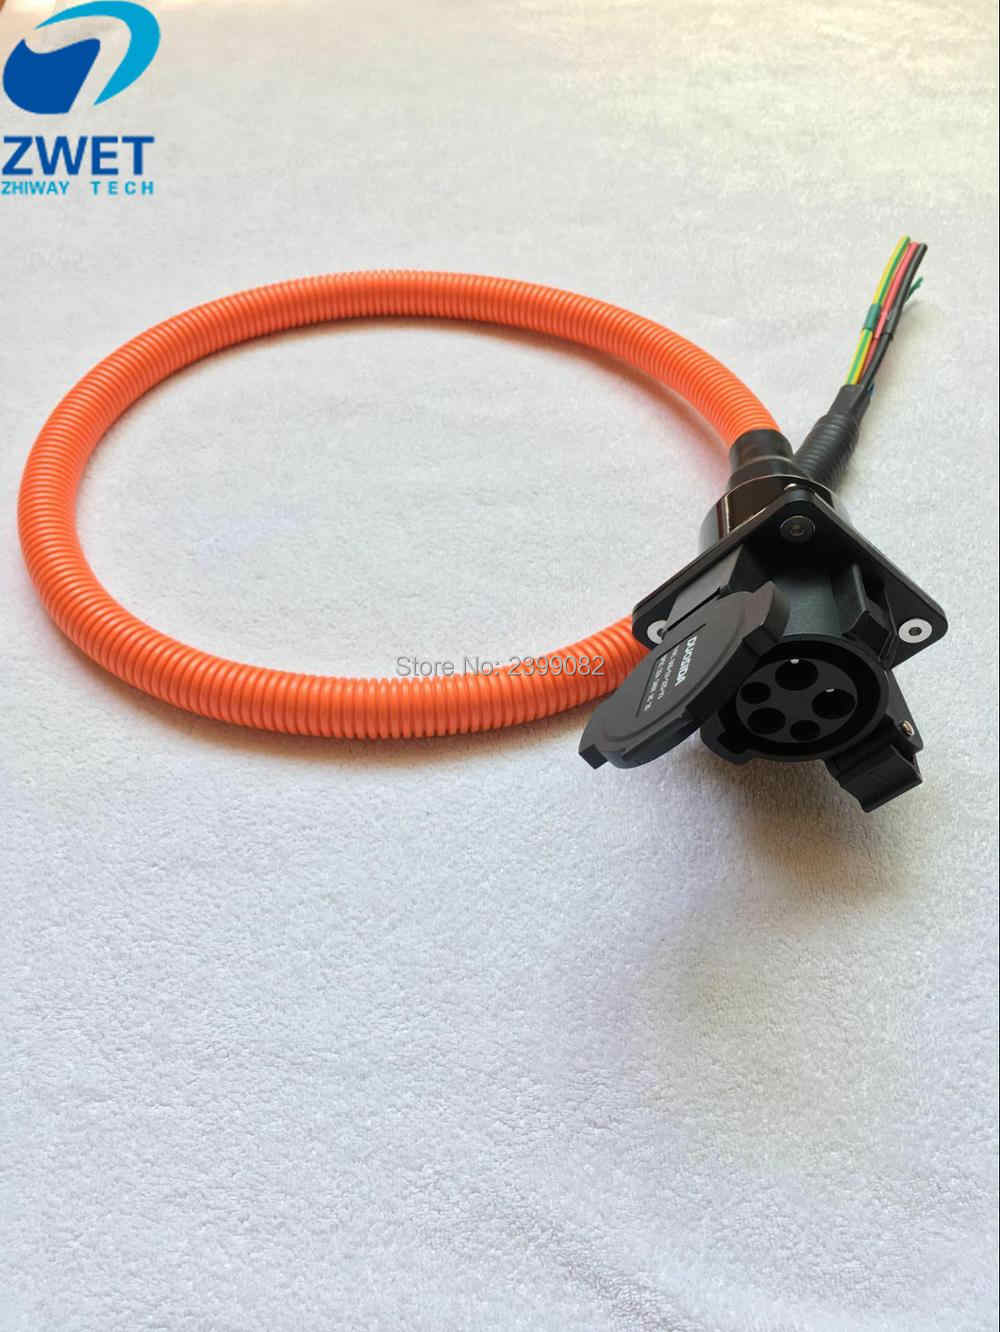 zwet sae j1772 male female charger ev charging connector plug electric vehicle charge socket 32 a [ 1000 x 1332 Pixel ]